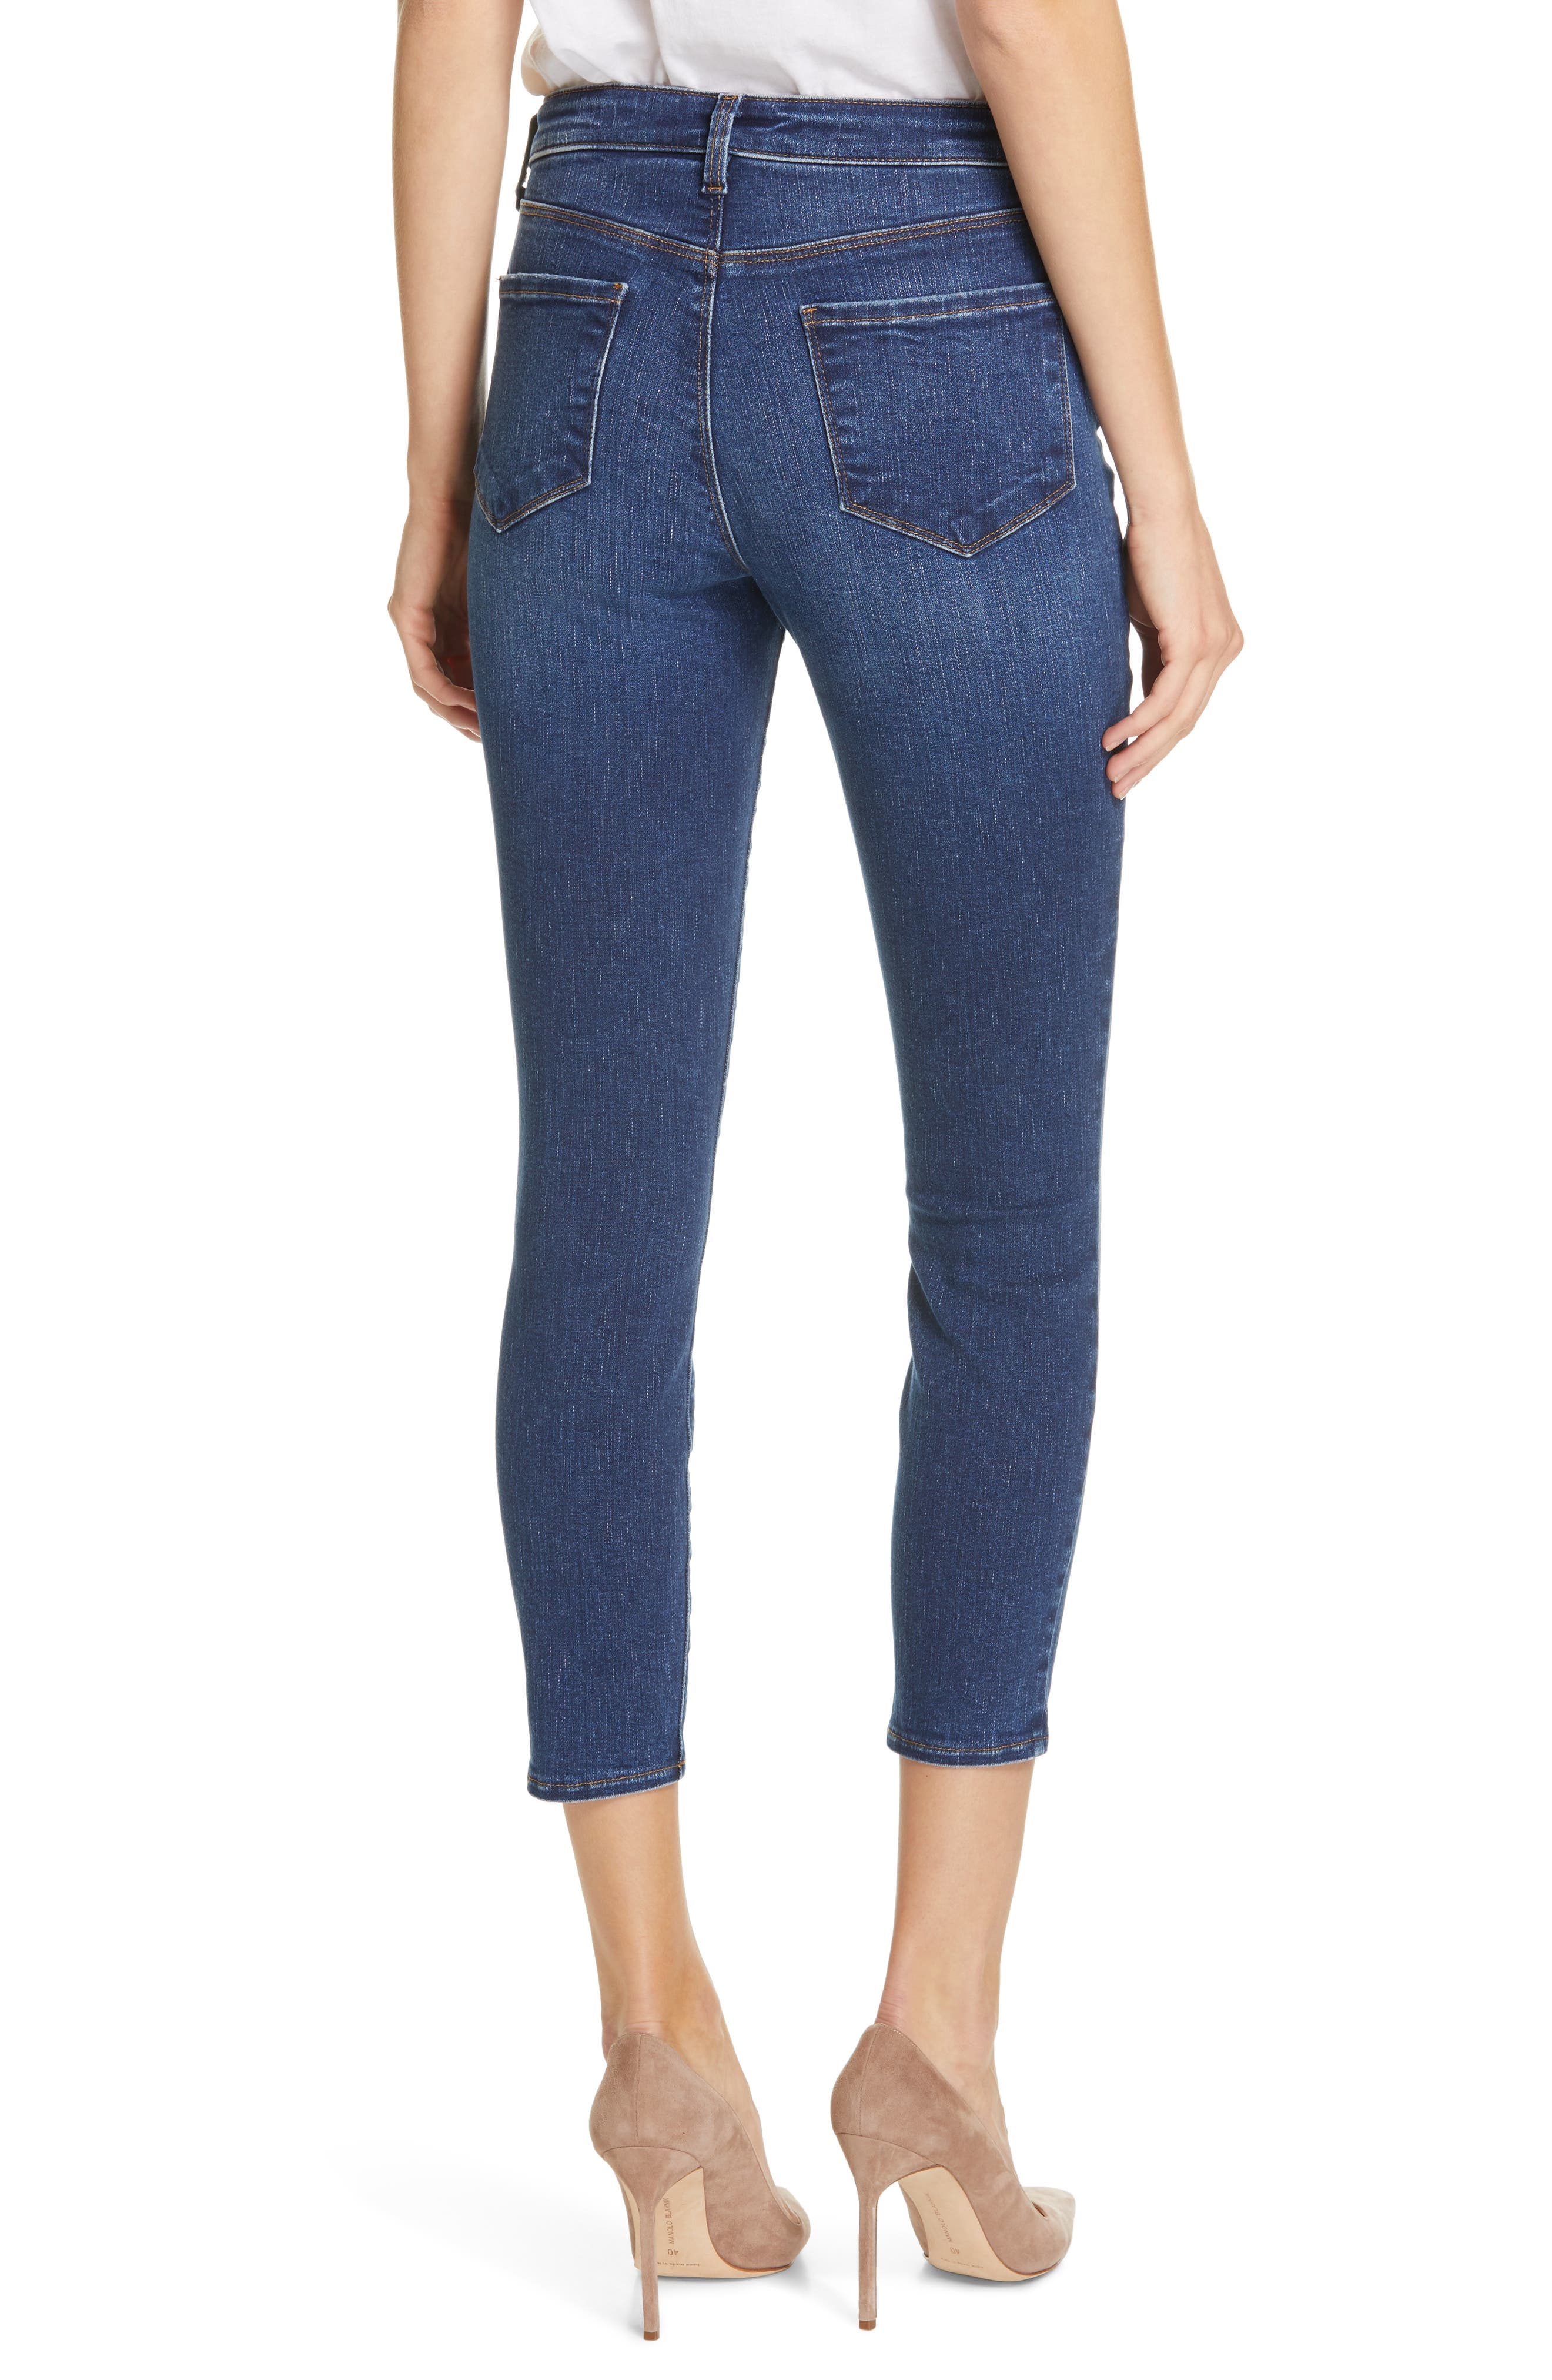 L'AGENCE, Margot Crop Skinny Jeans, Alternate thumbnail 2, color, TUSCAN